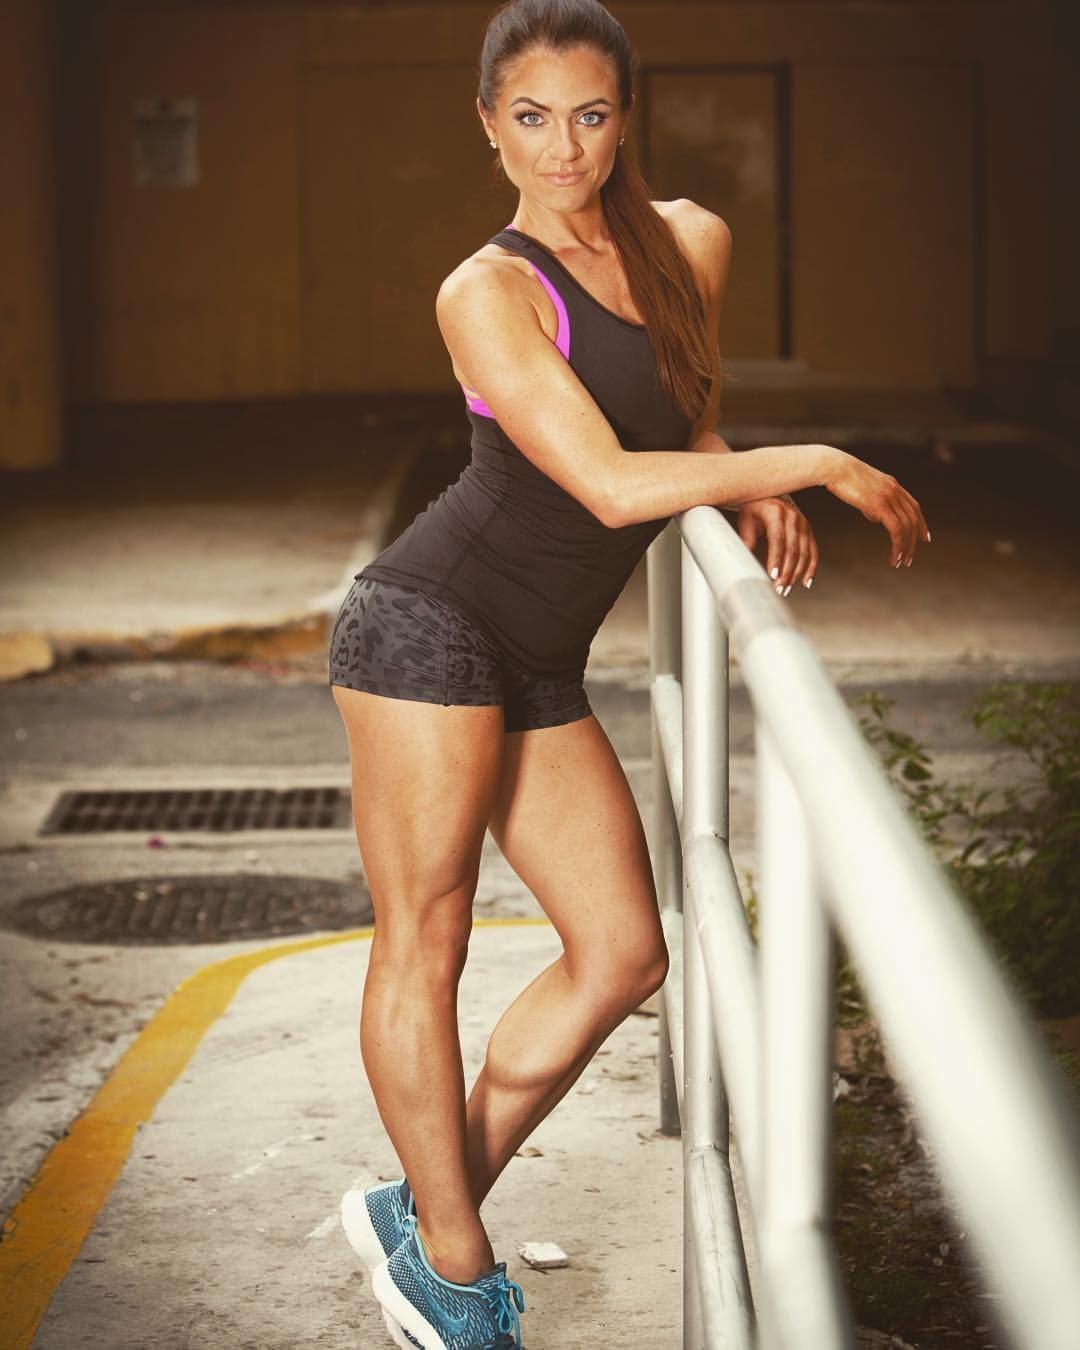 Teen girlsmuscle legs pic — photo 14